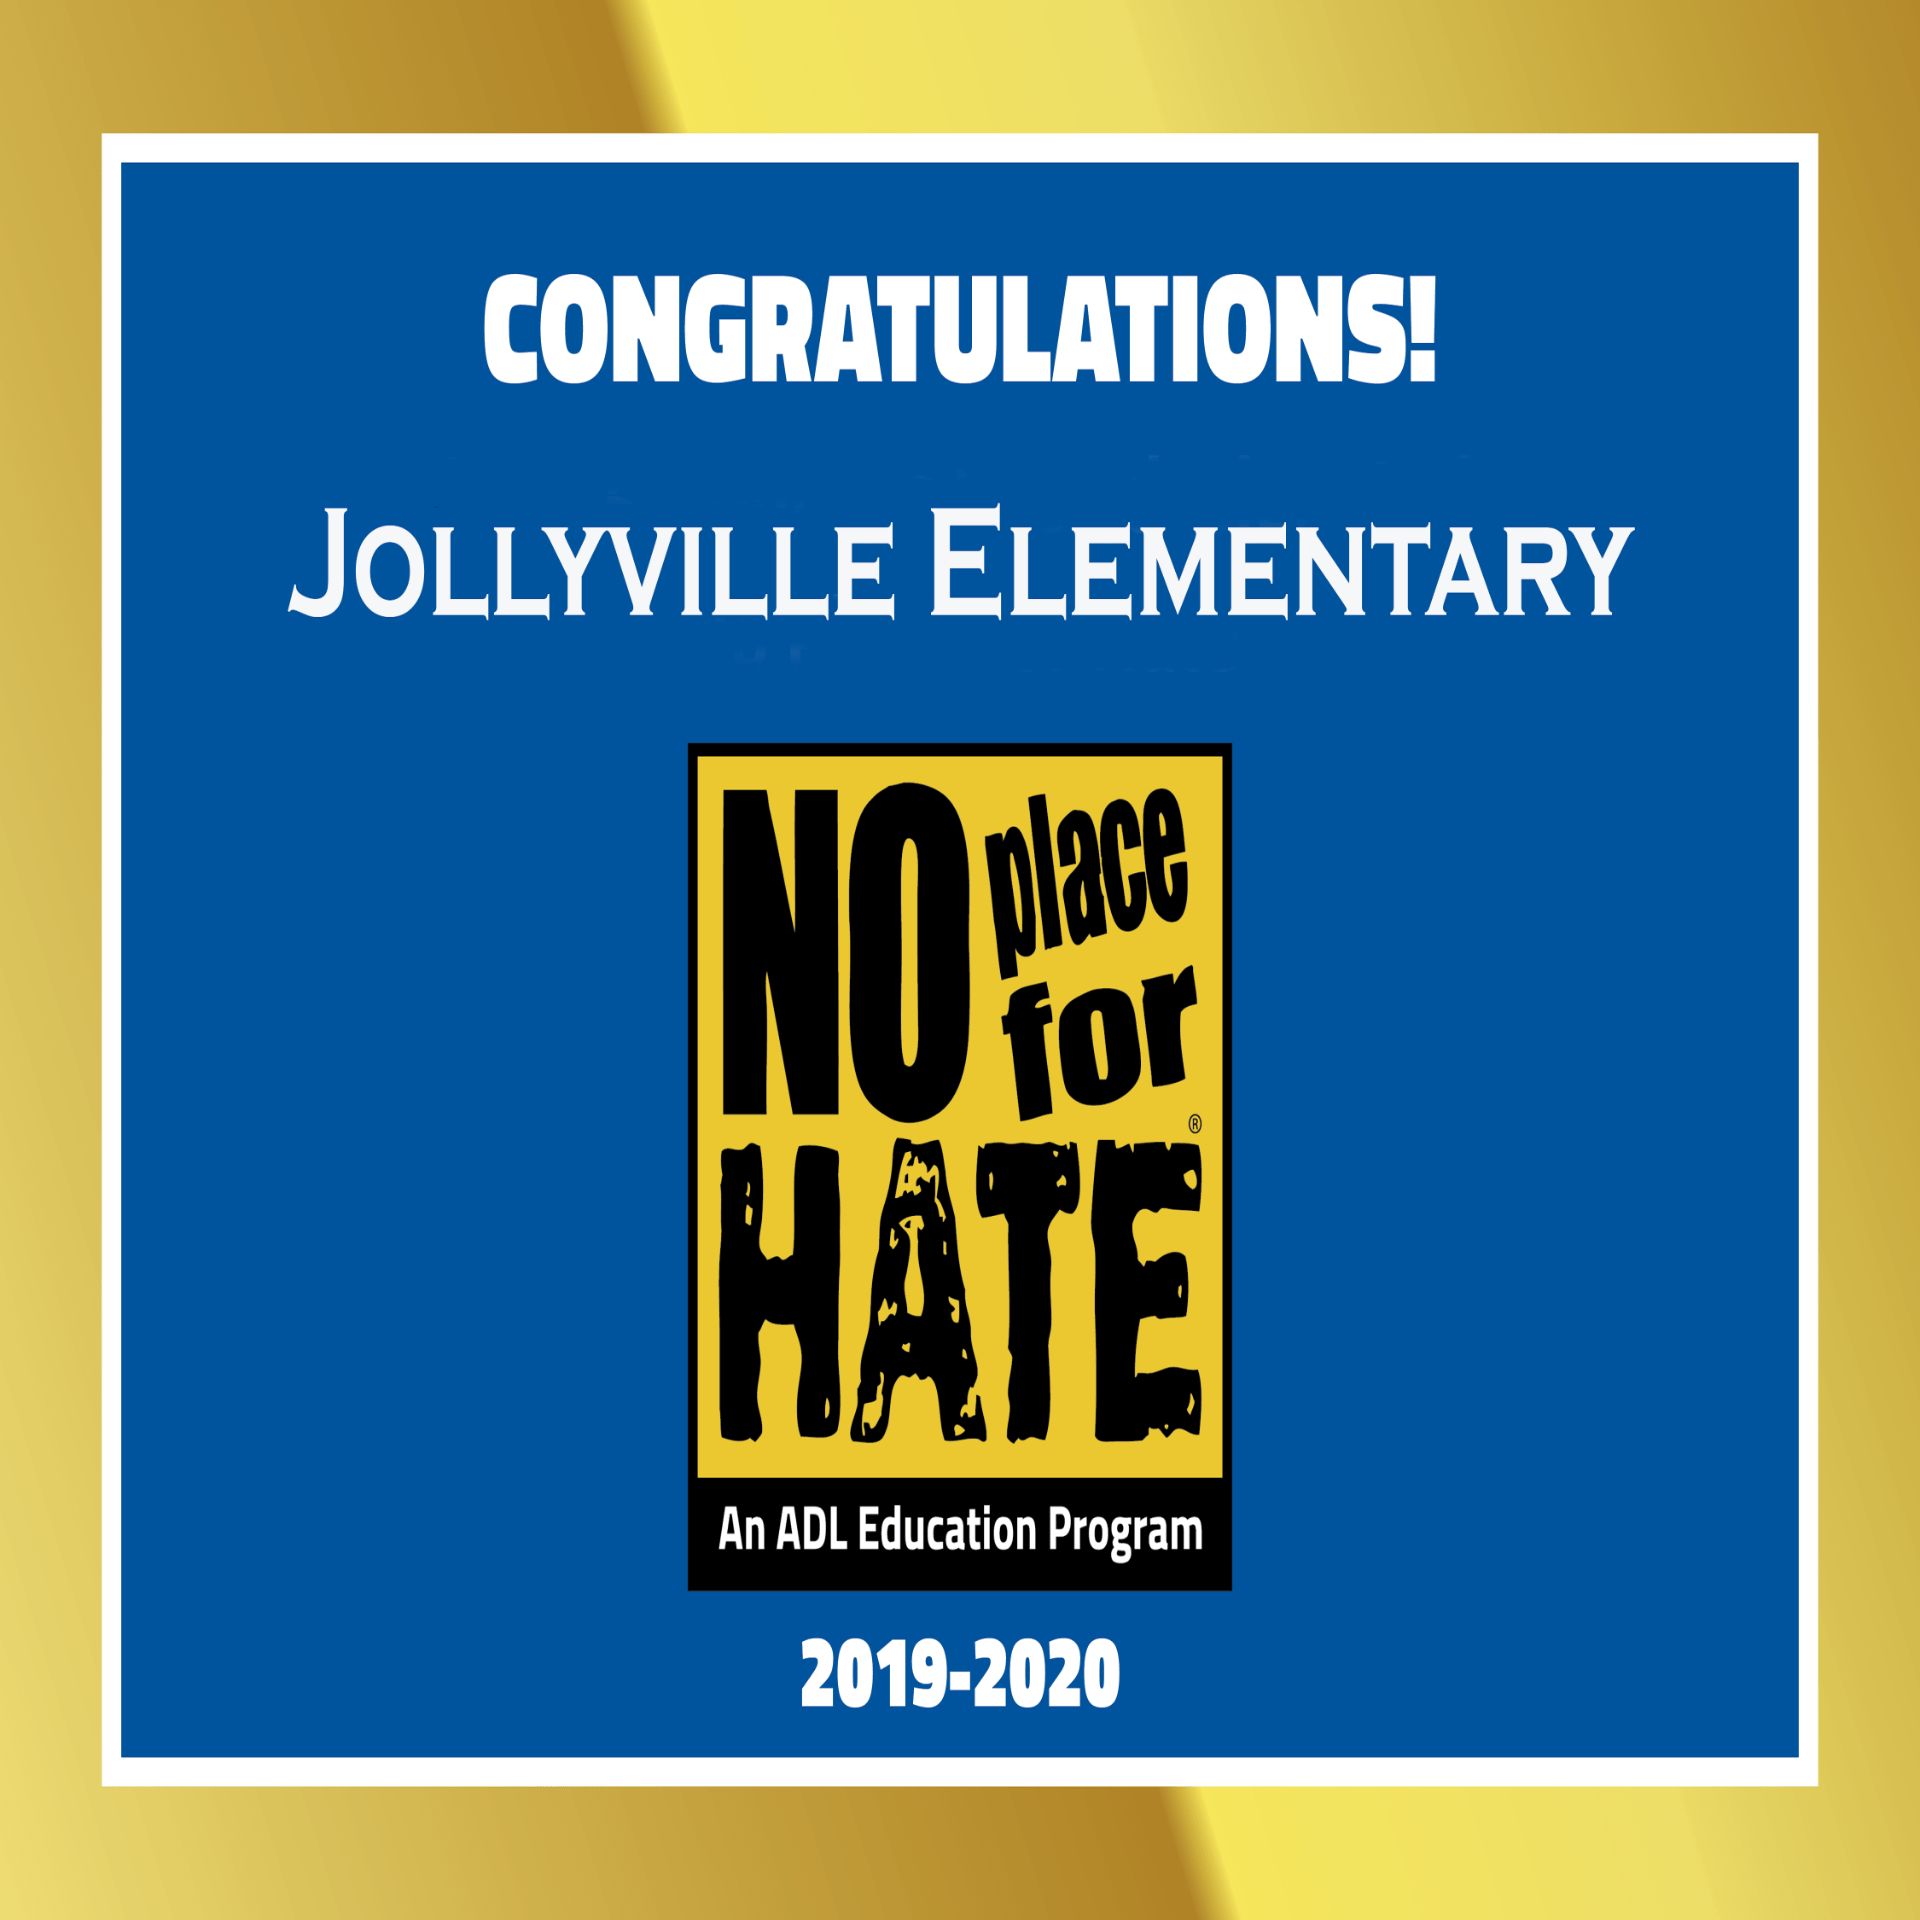 Congratulations Jollyville Elementary No Place for Hate An ADL Education Program 2019-2020